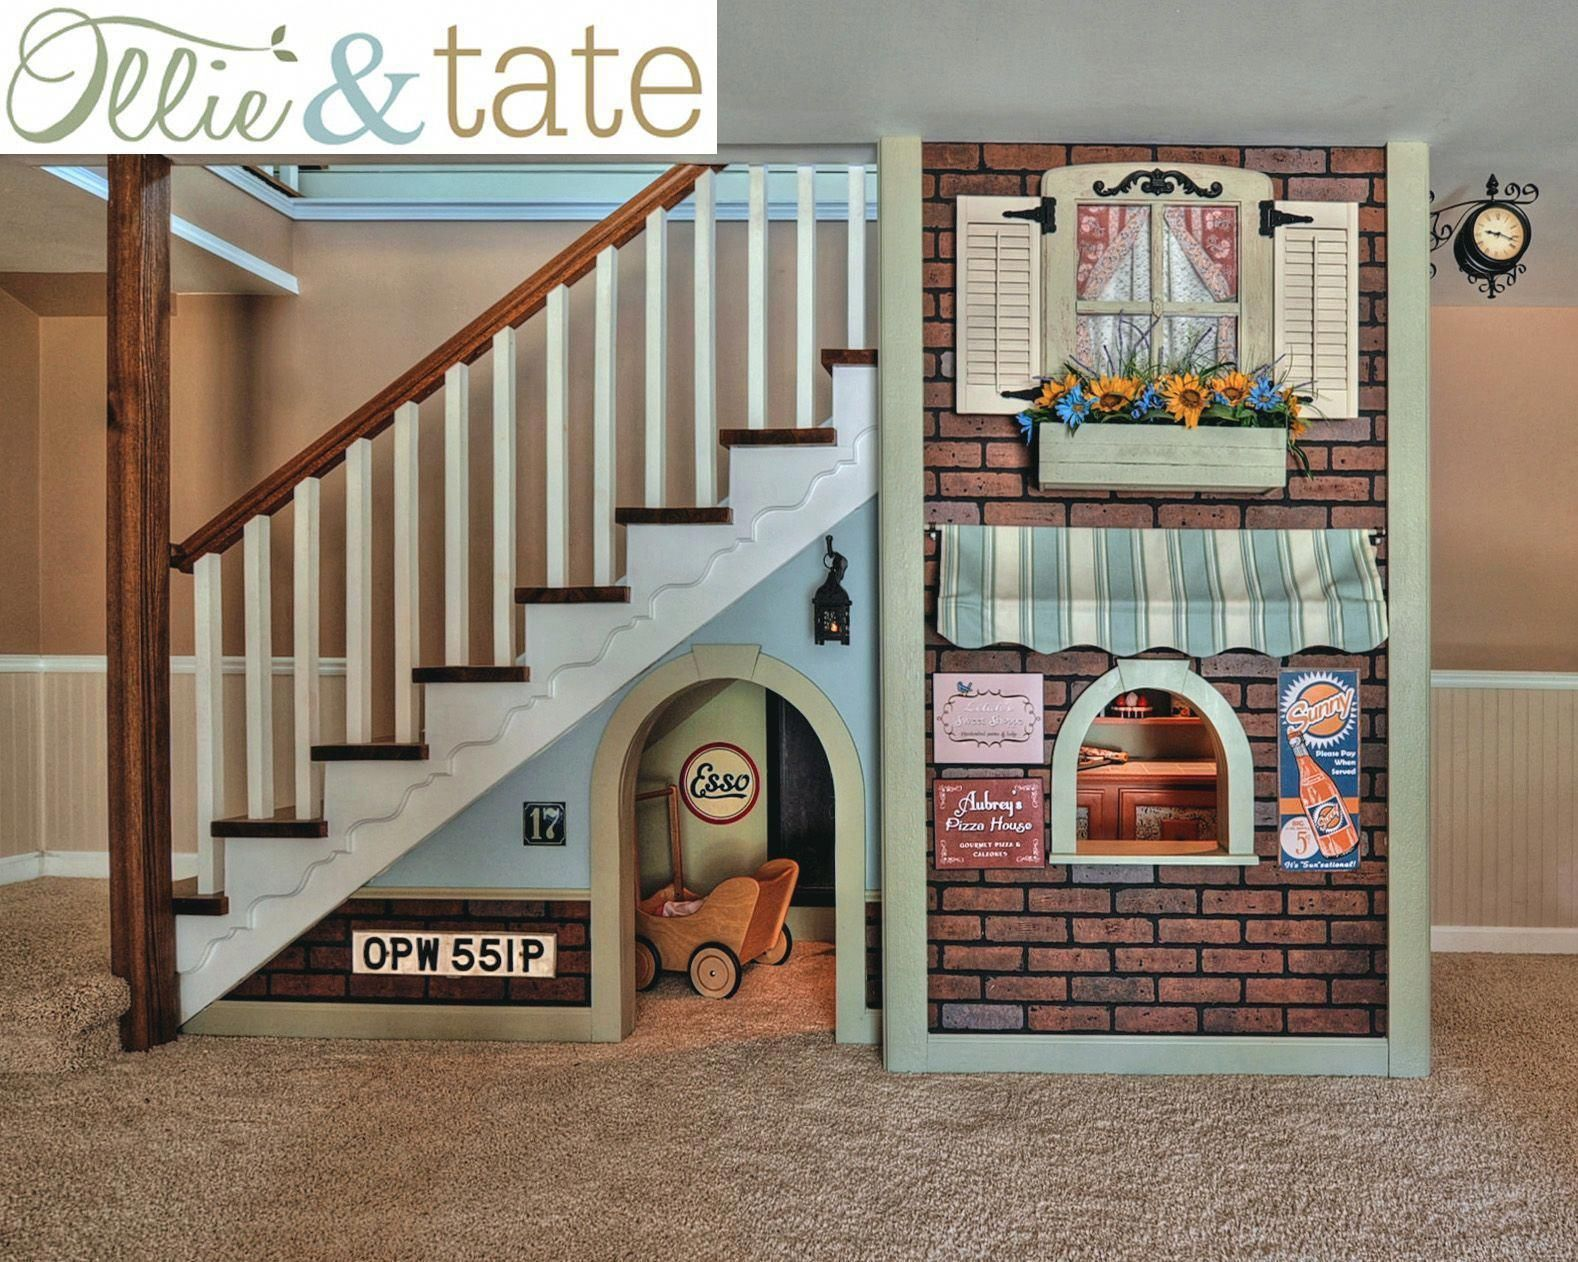 Under The Stairs Playhouse Kids Playhouse Indoor Playhouse Pretend Bakery Kids Fort Play Kitchen Fren Kids Indoor Playhouse Indoor Playhouse Play Houses